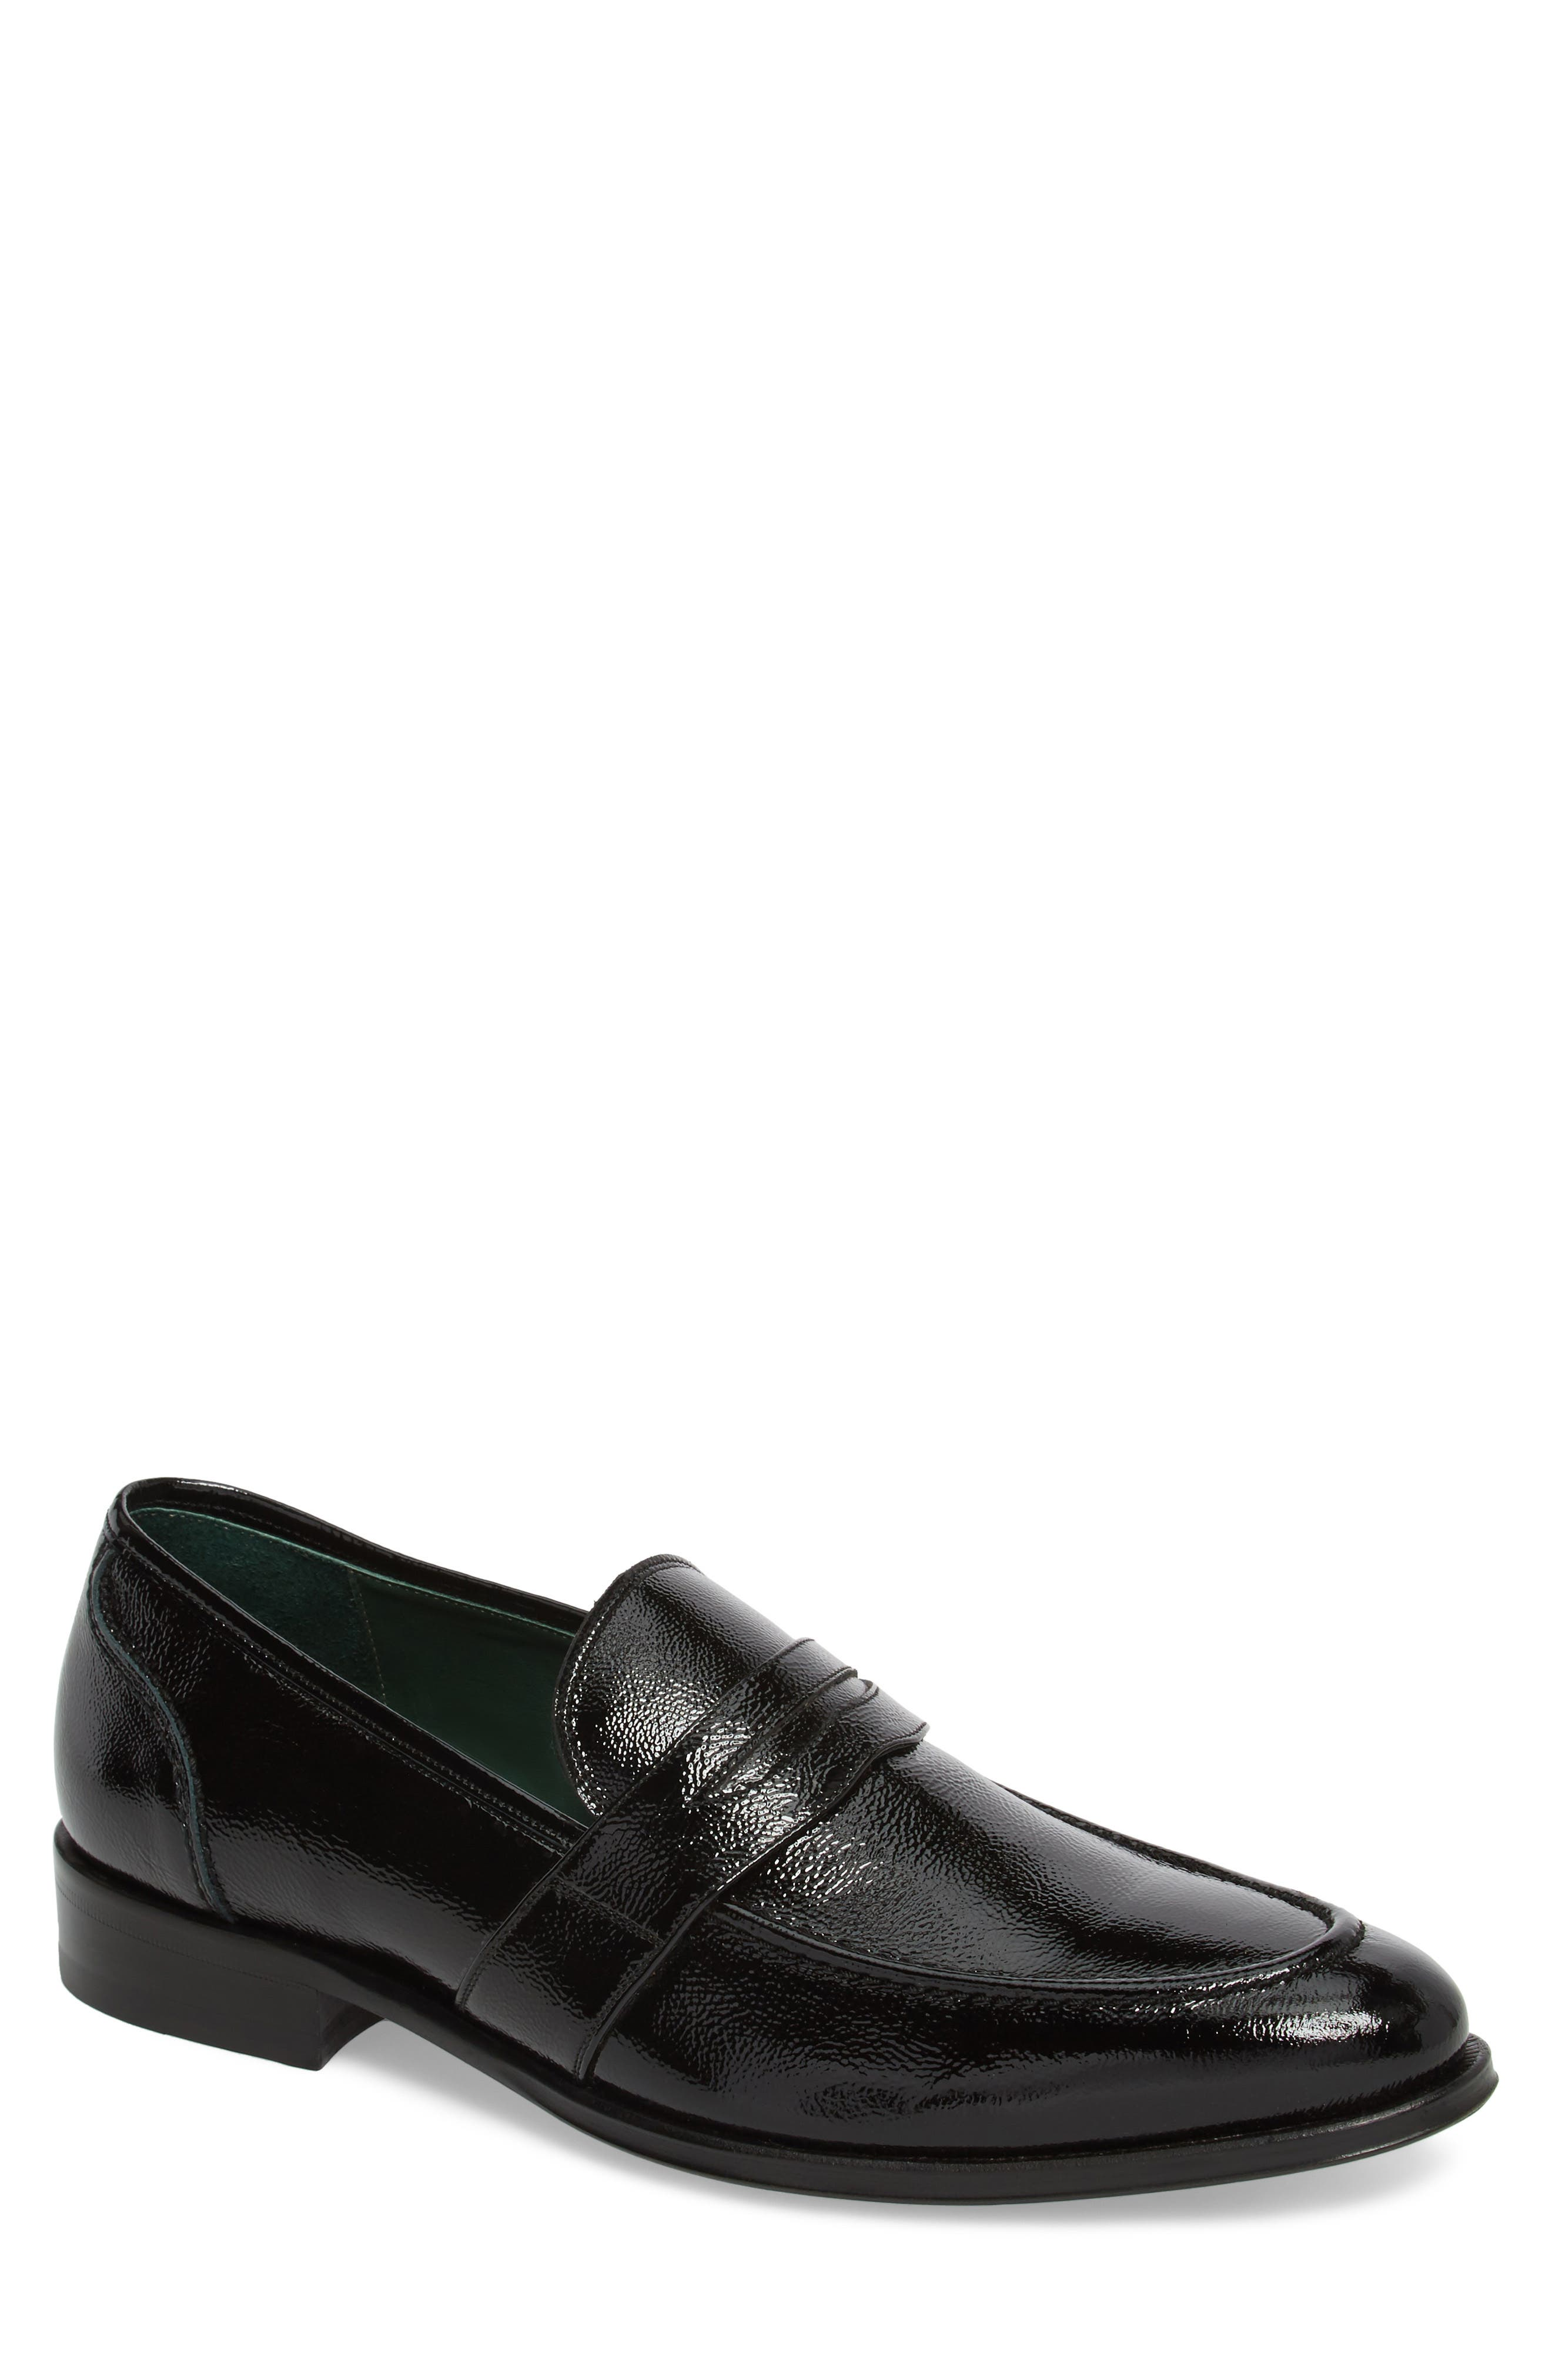 Argos Penny Loafer,                             Main thumbnail 1, color,